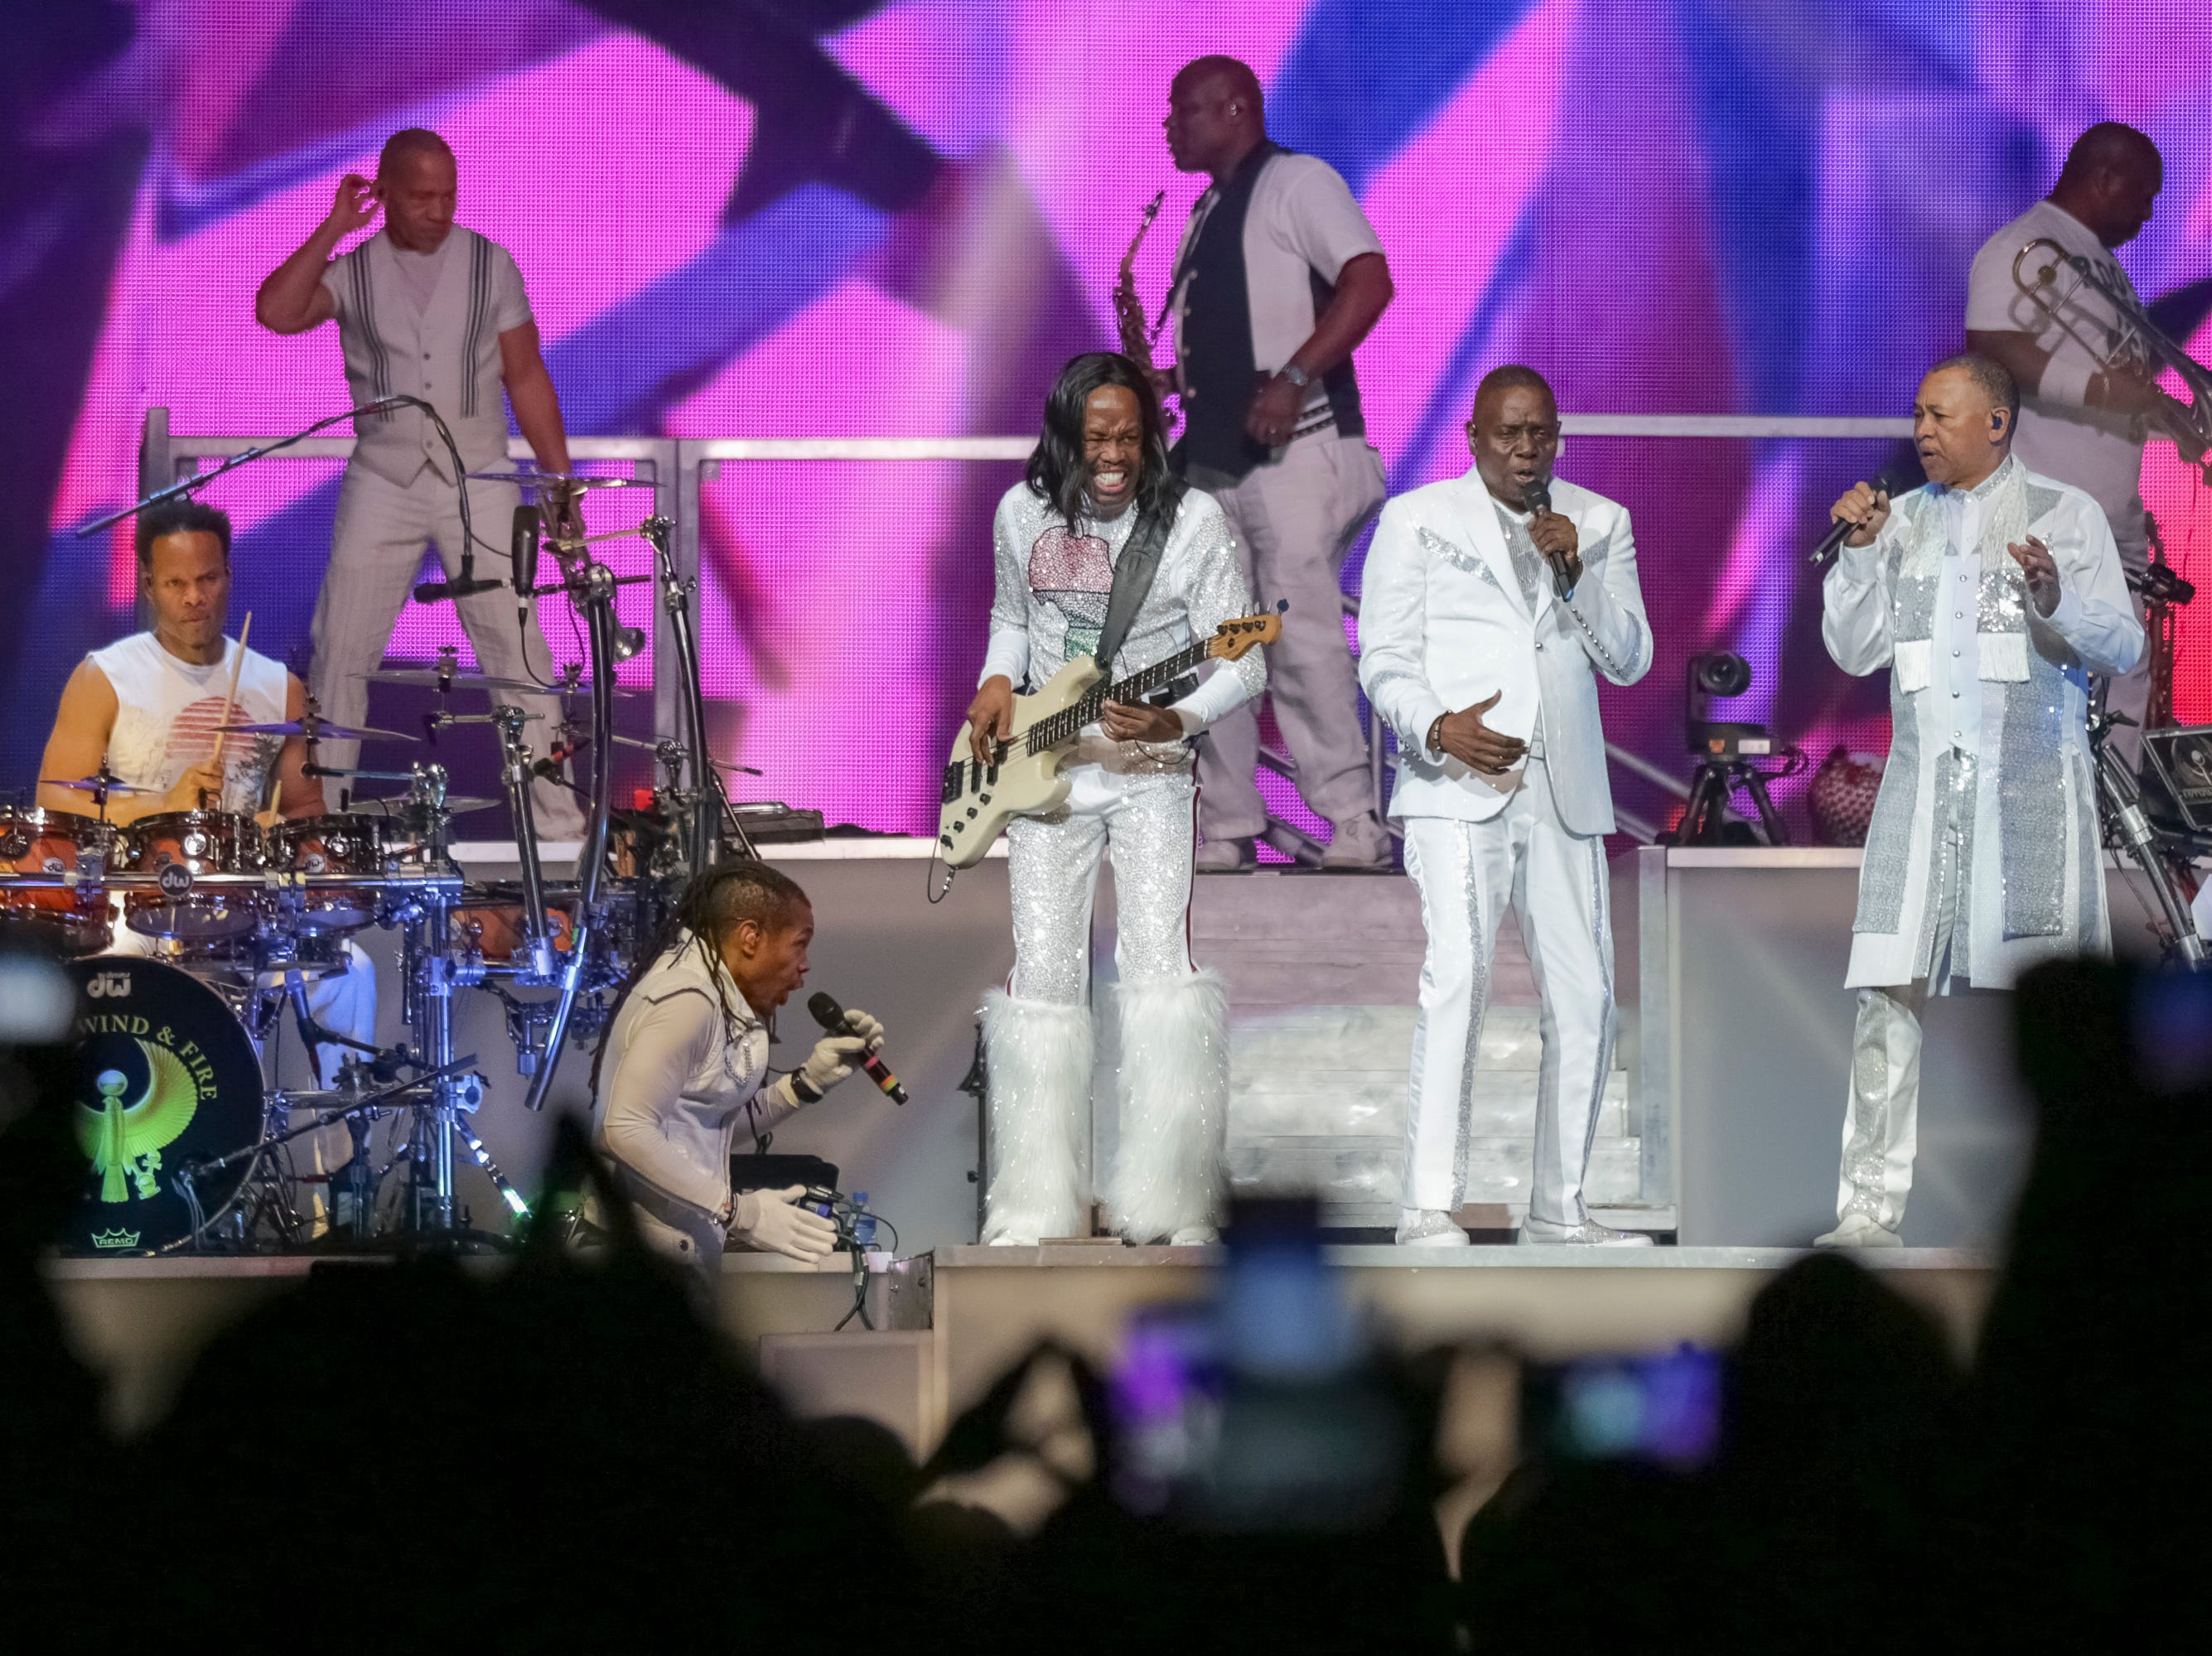 Earth, Wind and Fire performs on stage Aug. 9, 2017, at the Verizon Center in Washington. The band will perform at SunFest in West Palm Beach. Earth, Wind and Fire will perform at SunFest in West Palm Beach.